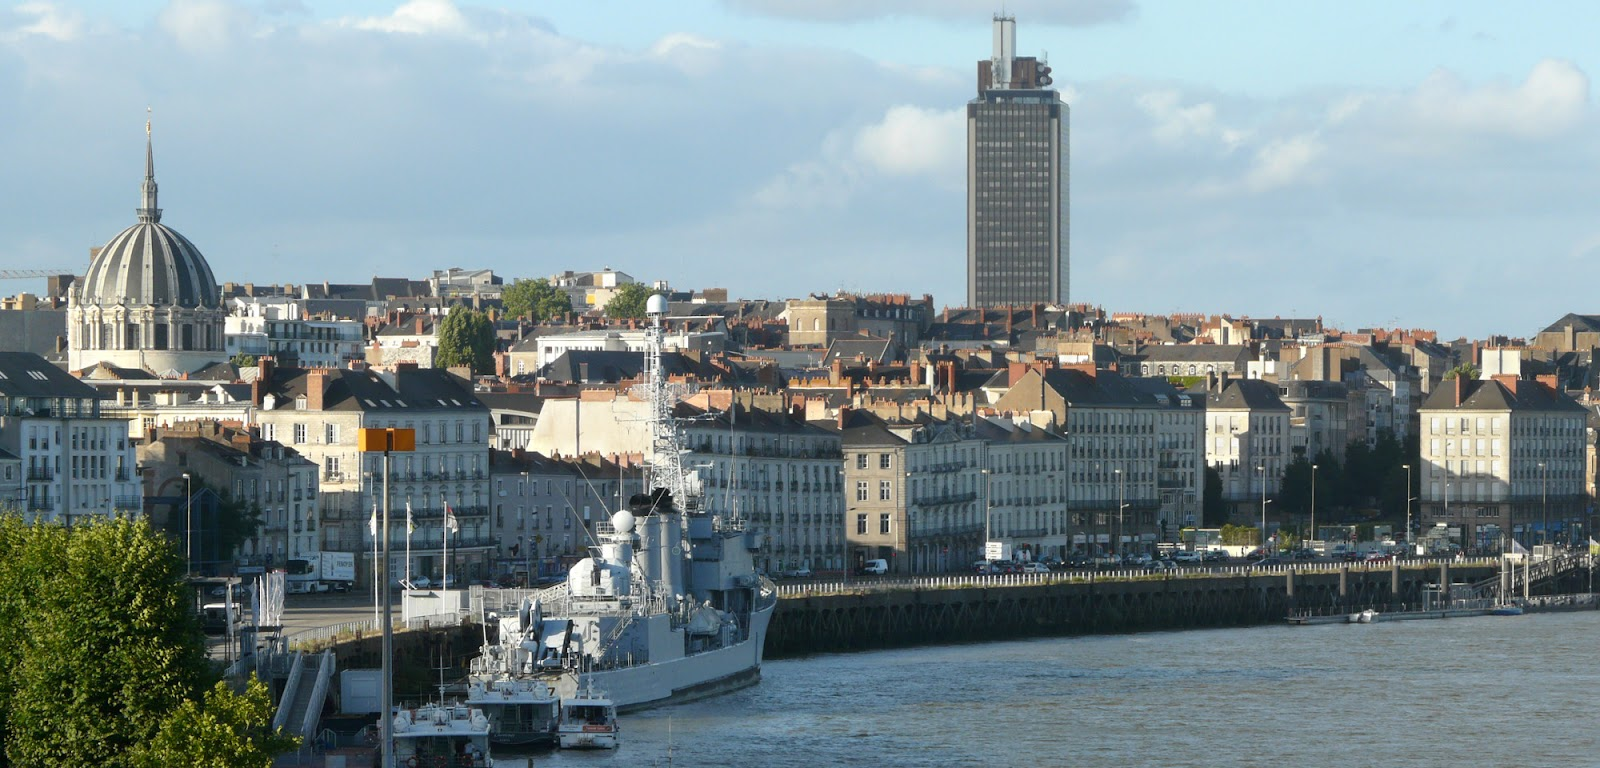 city view of nantes, france. river in foreground, parked military ship and traditional french buildings lining the coast. highrise building in background, on a sunny day in france.